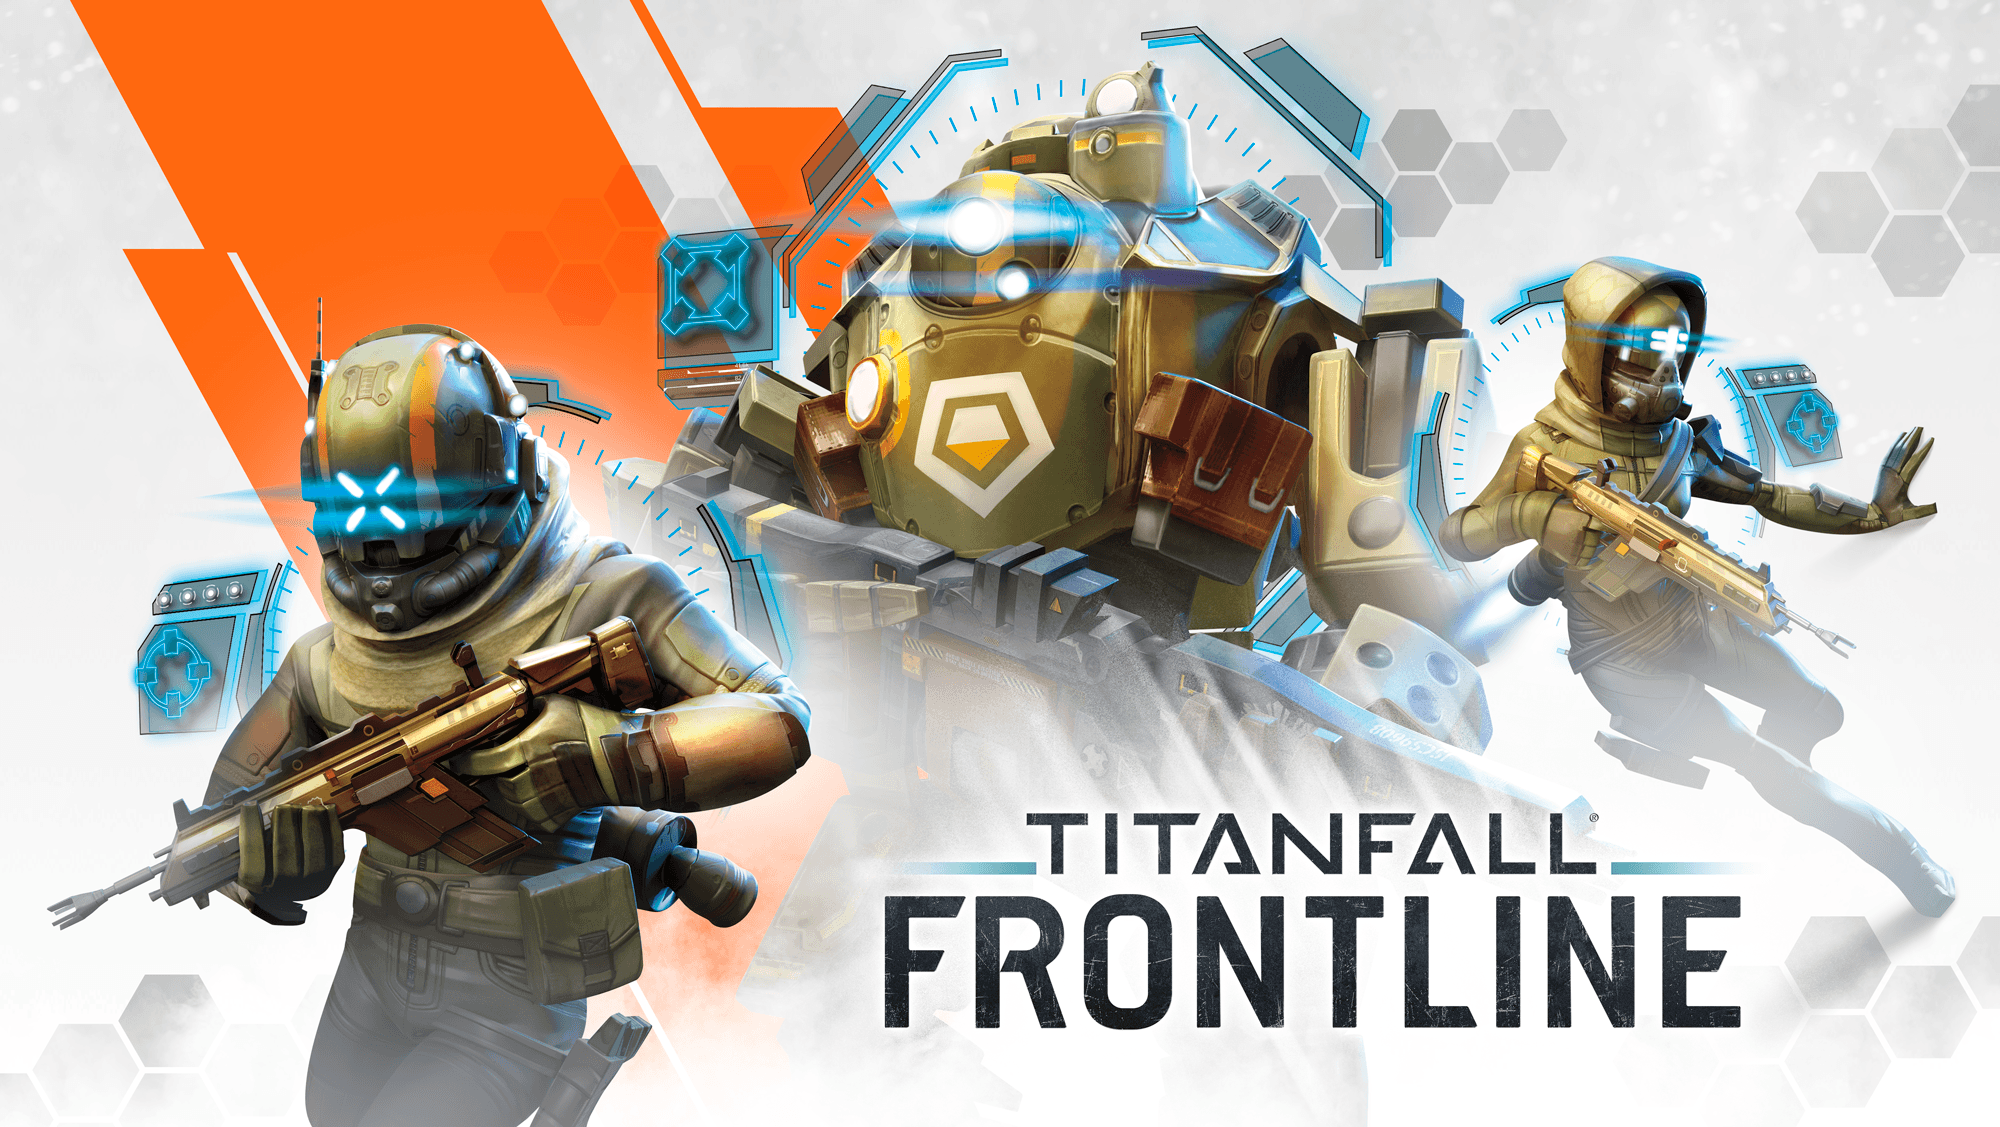 Titanfall: Frontline a fast-paced head-to-head strategy card battler